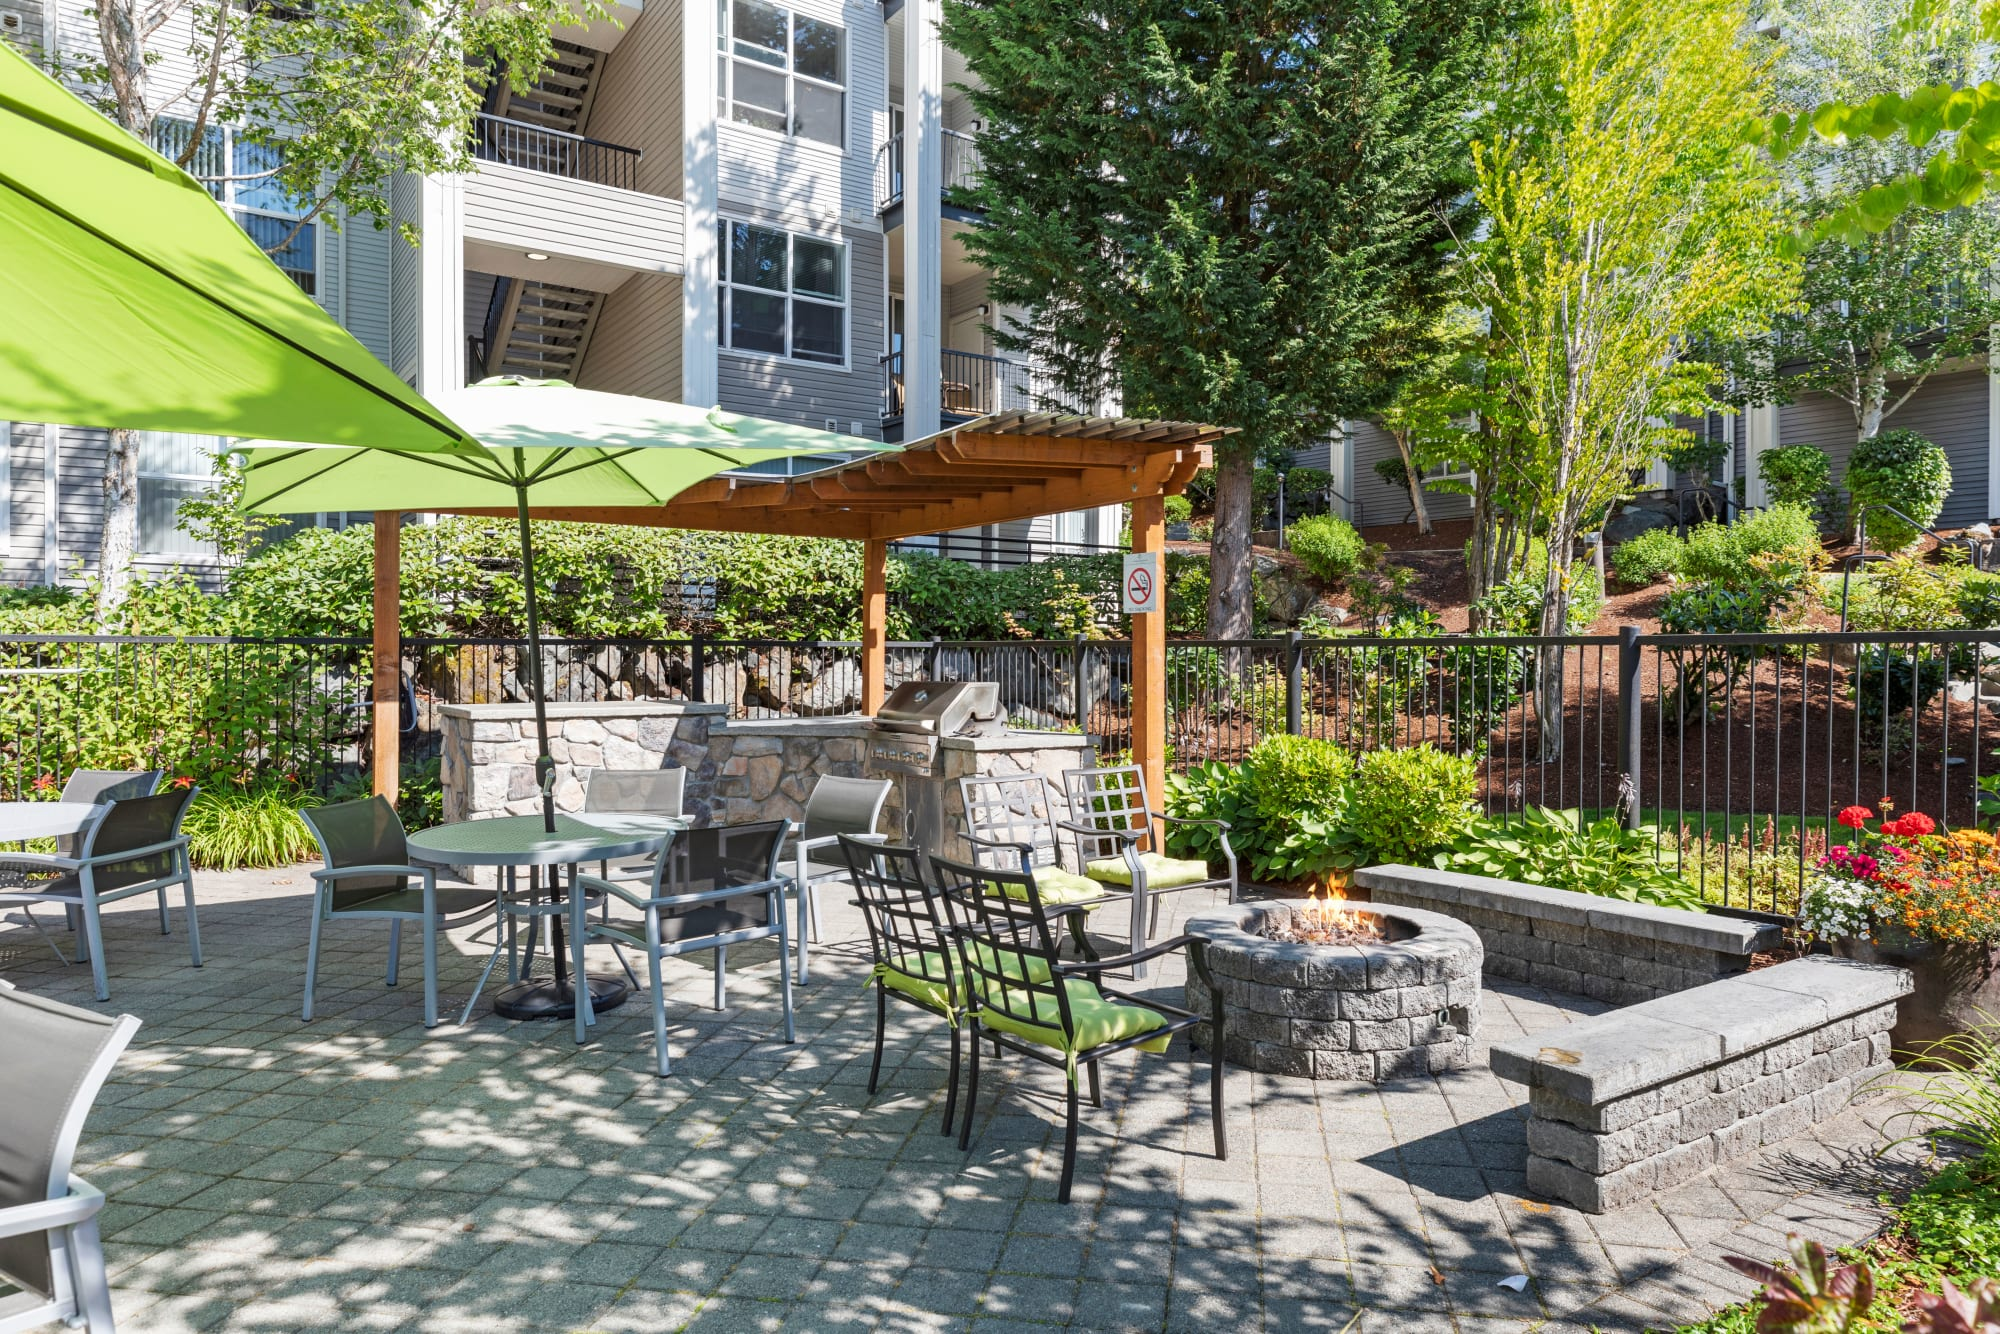 Poolside fire pit area at HighGrove Apartments in Everett, Washington